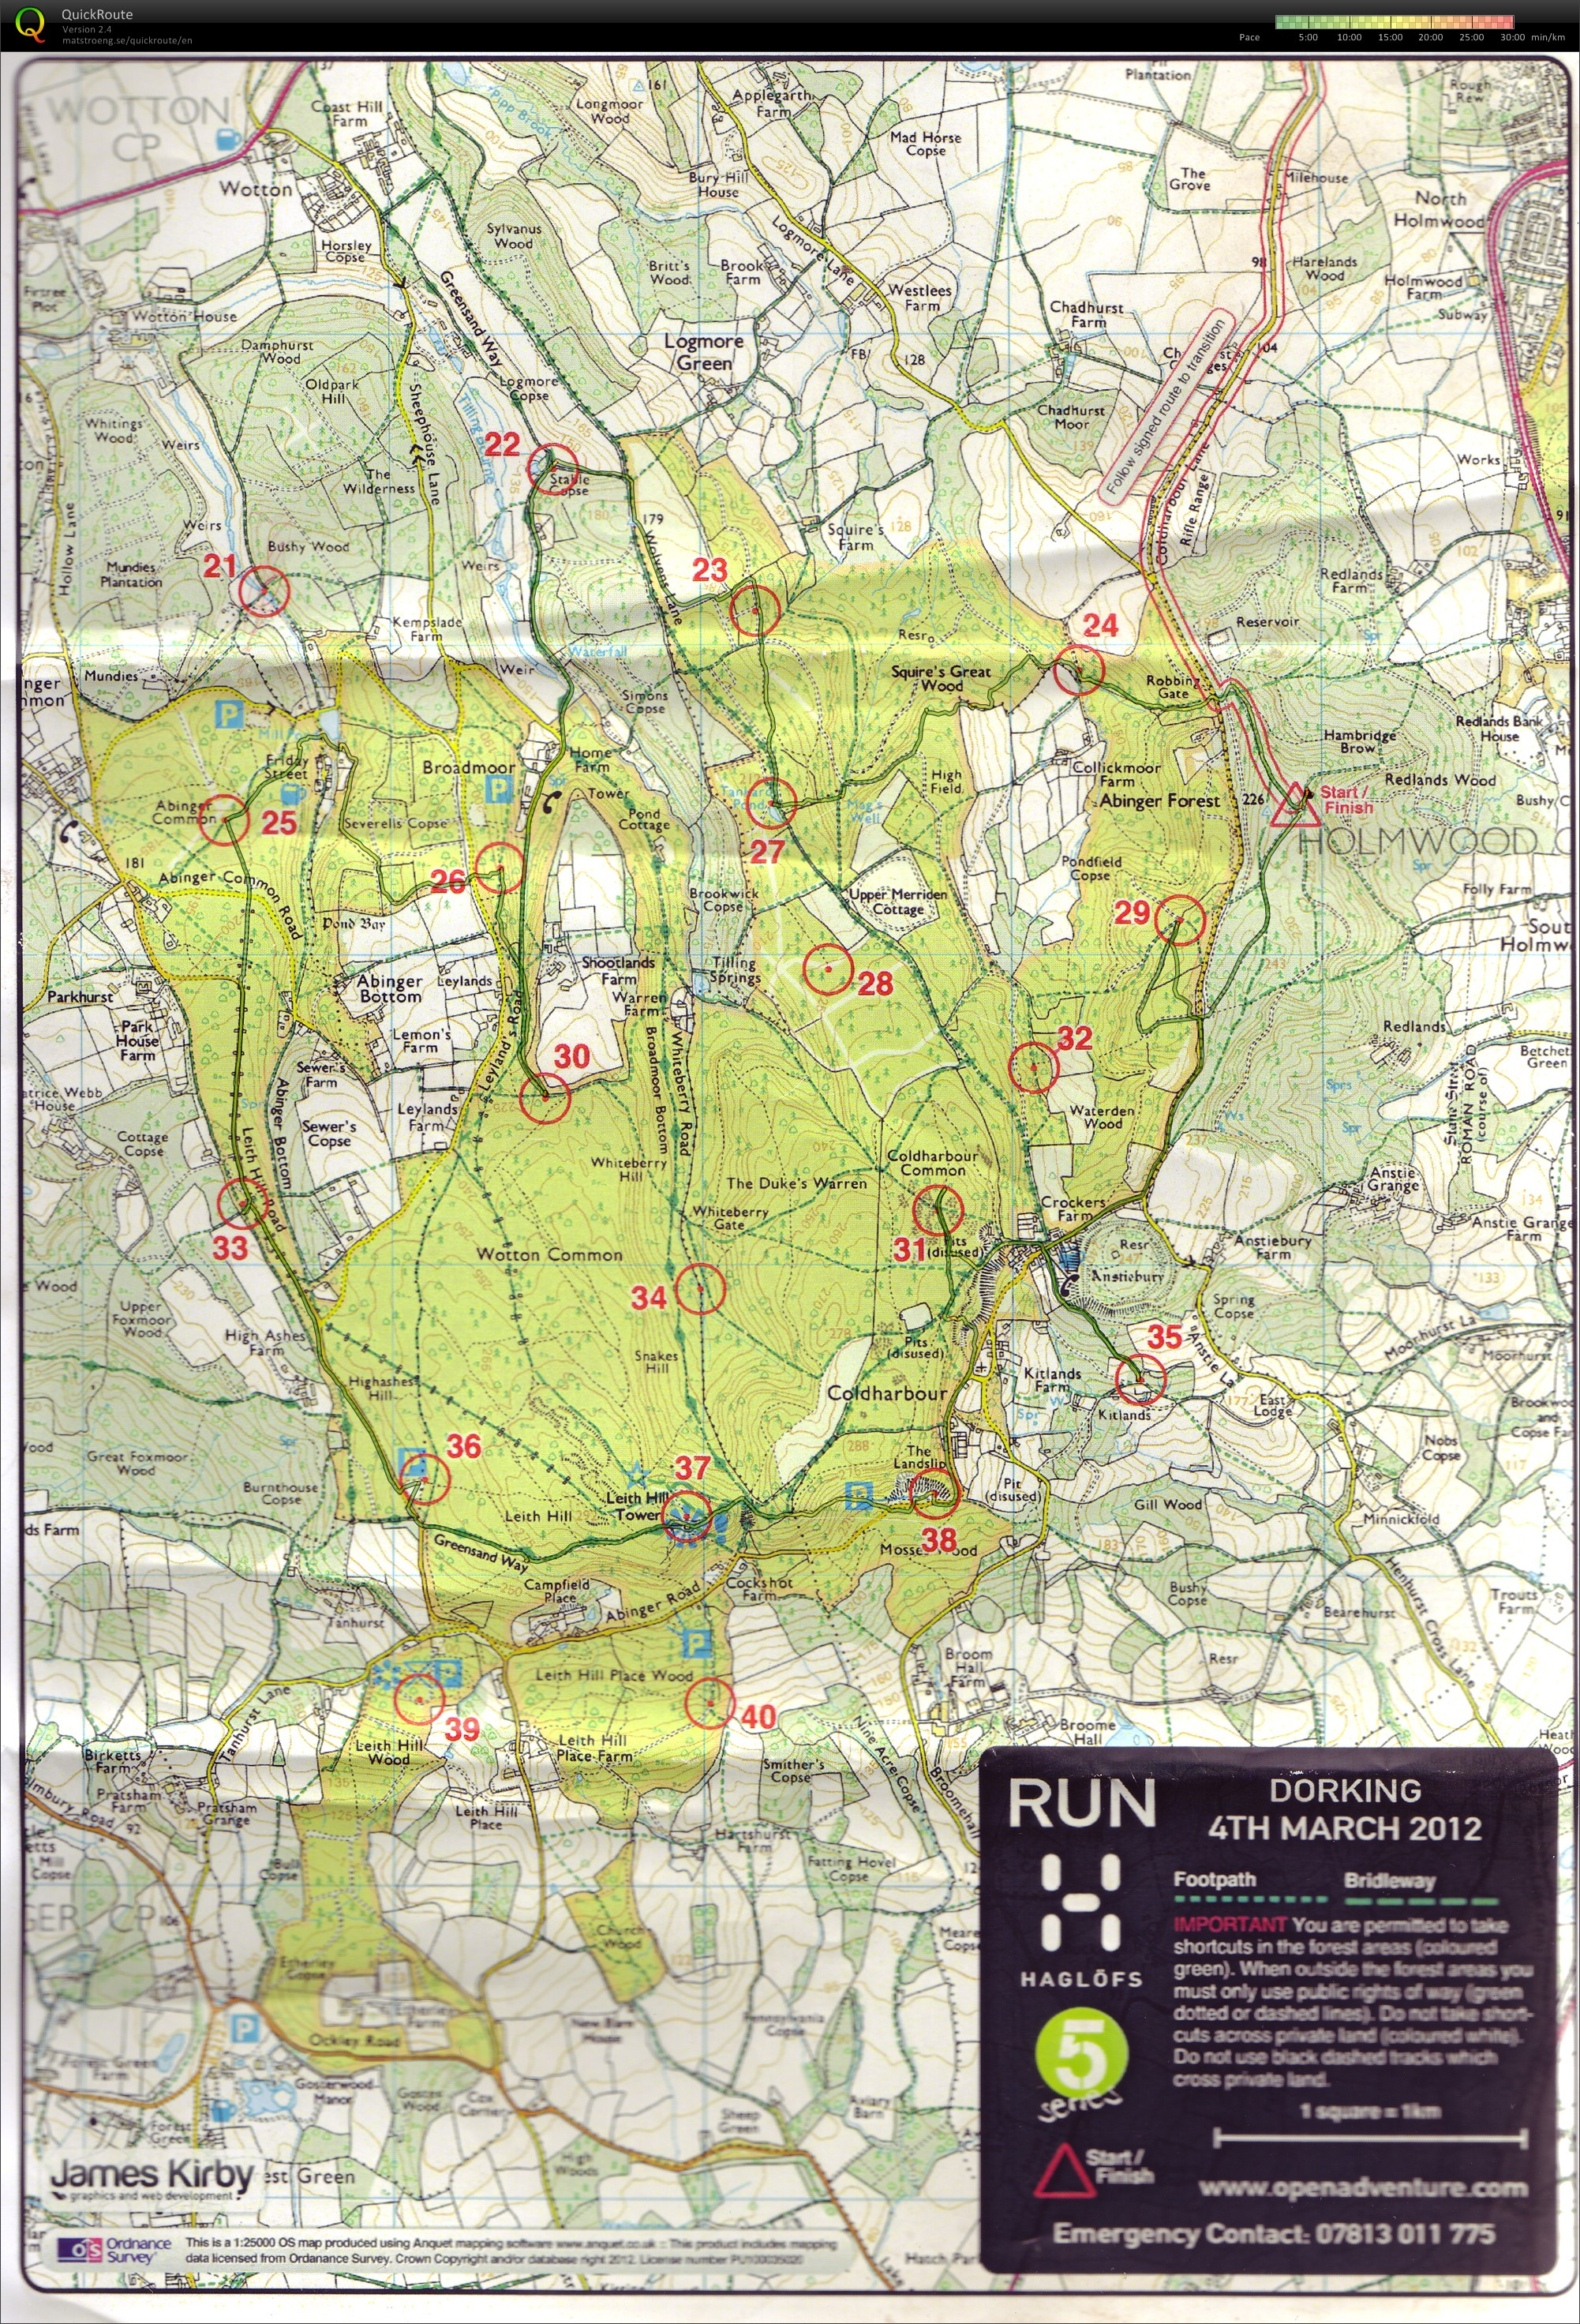 Open Adventure - North Downs - Run